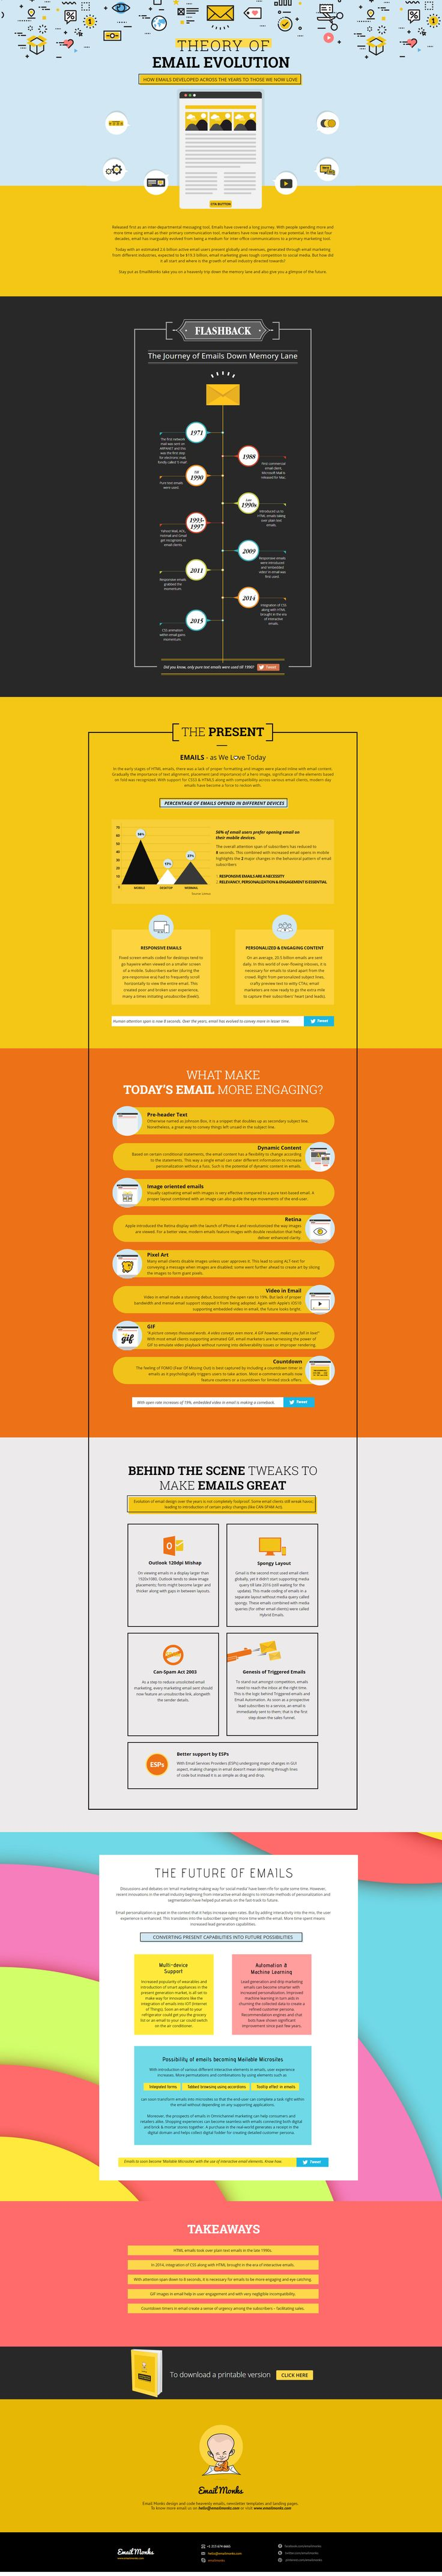 Theory Of Email Evolution #Infographic #EmailMarketing